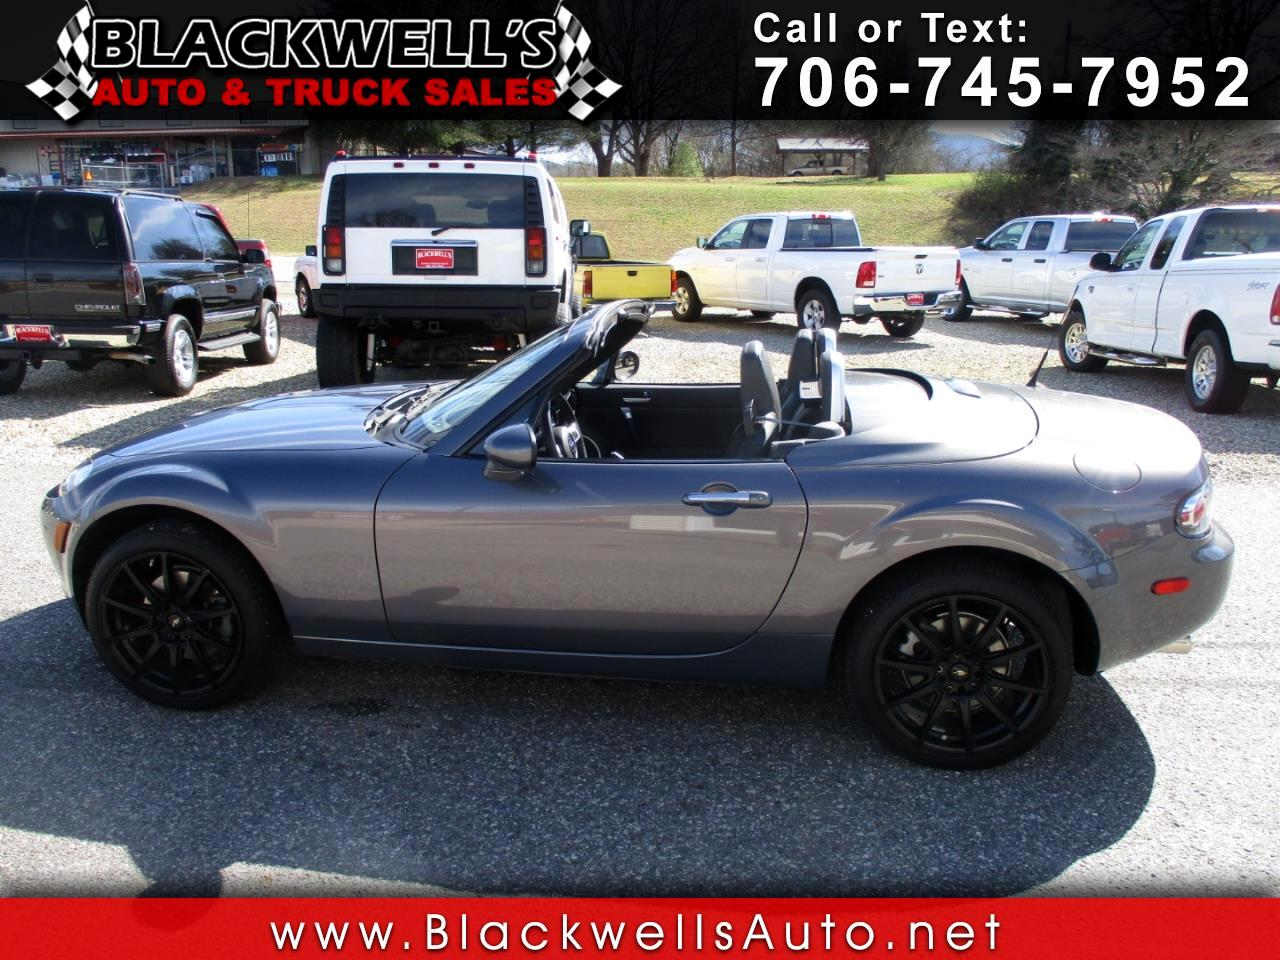 2008 Mazda MX-5 Miata 2dr Conv PRHT Man Grand Touring